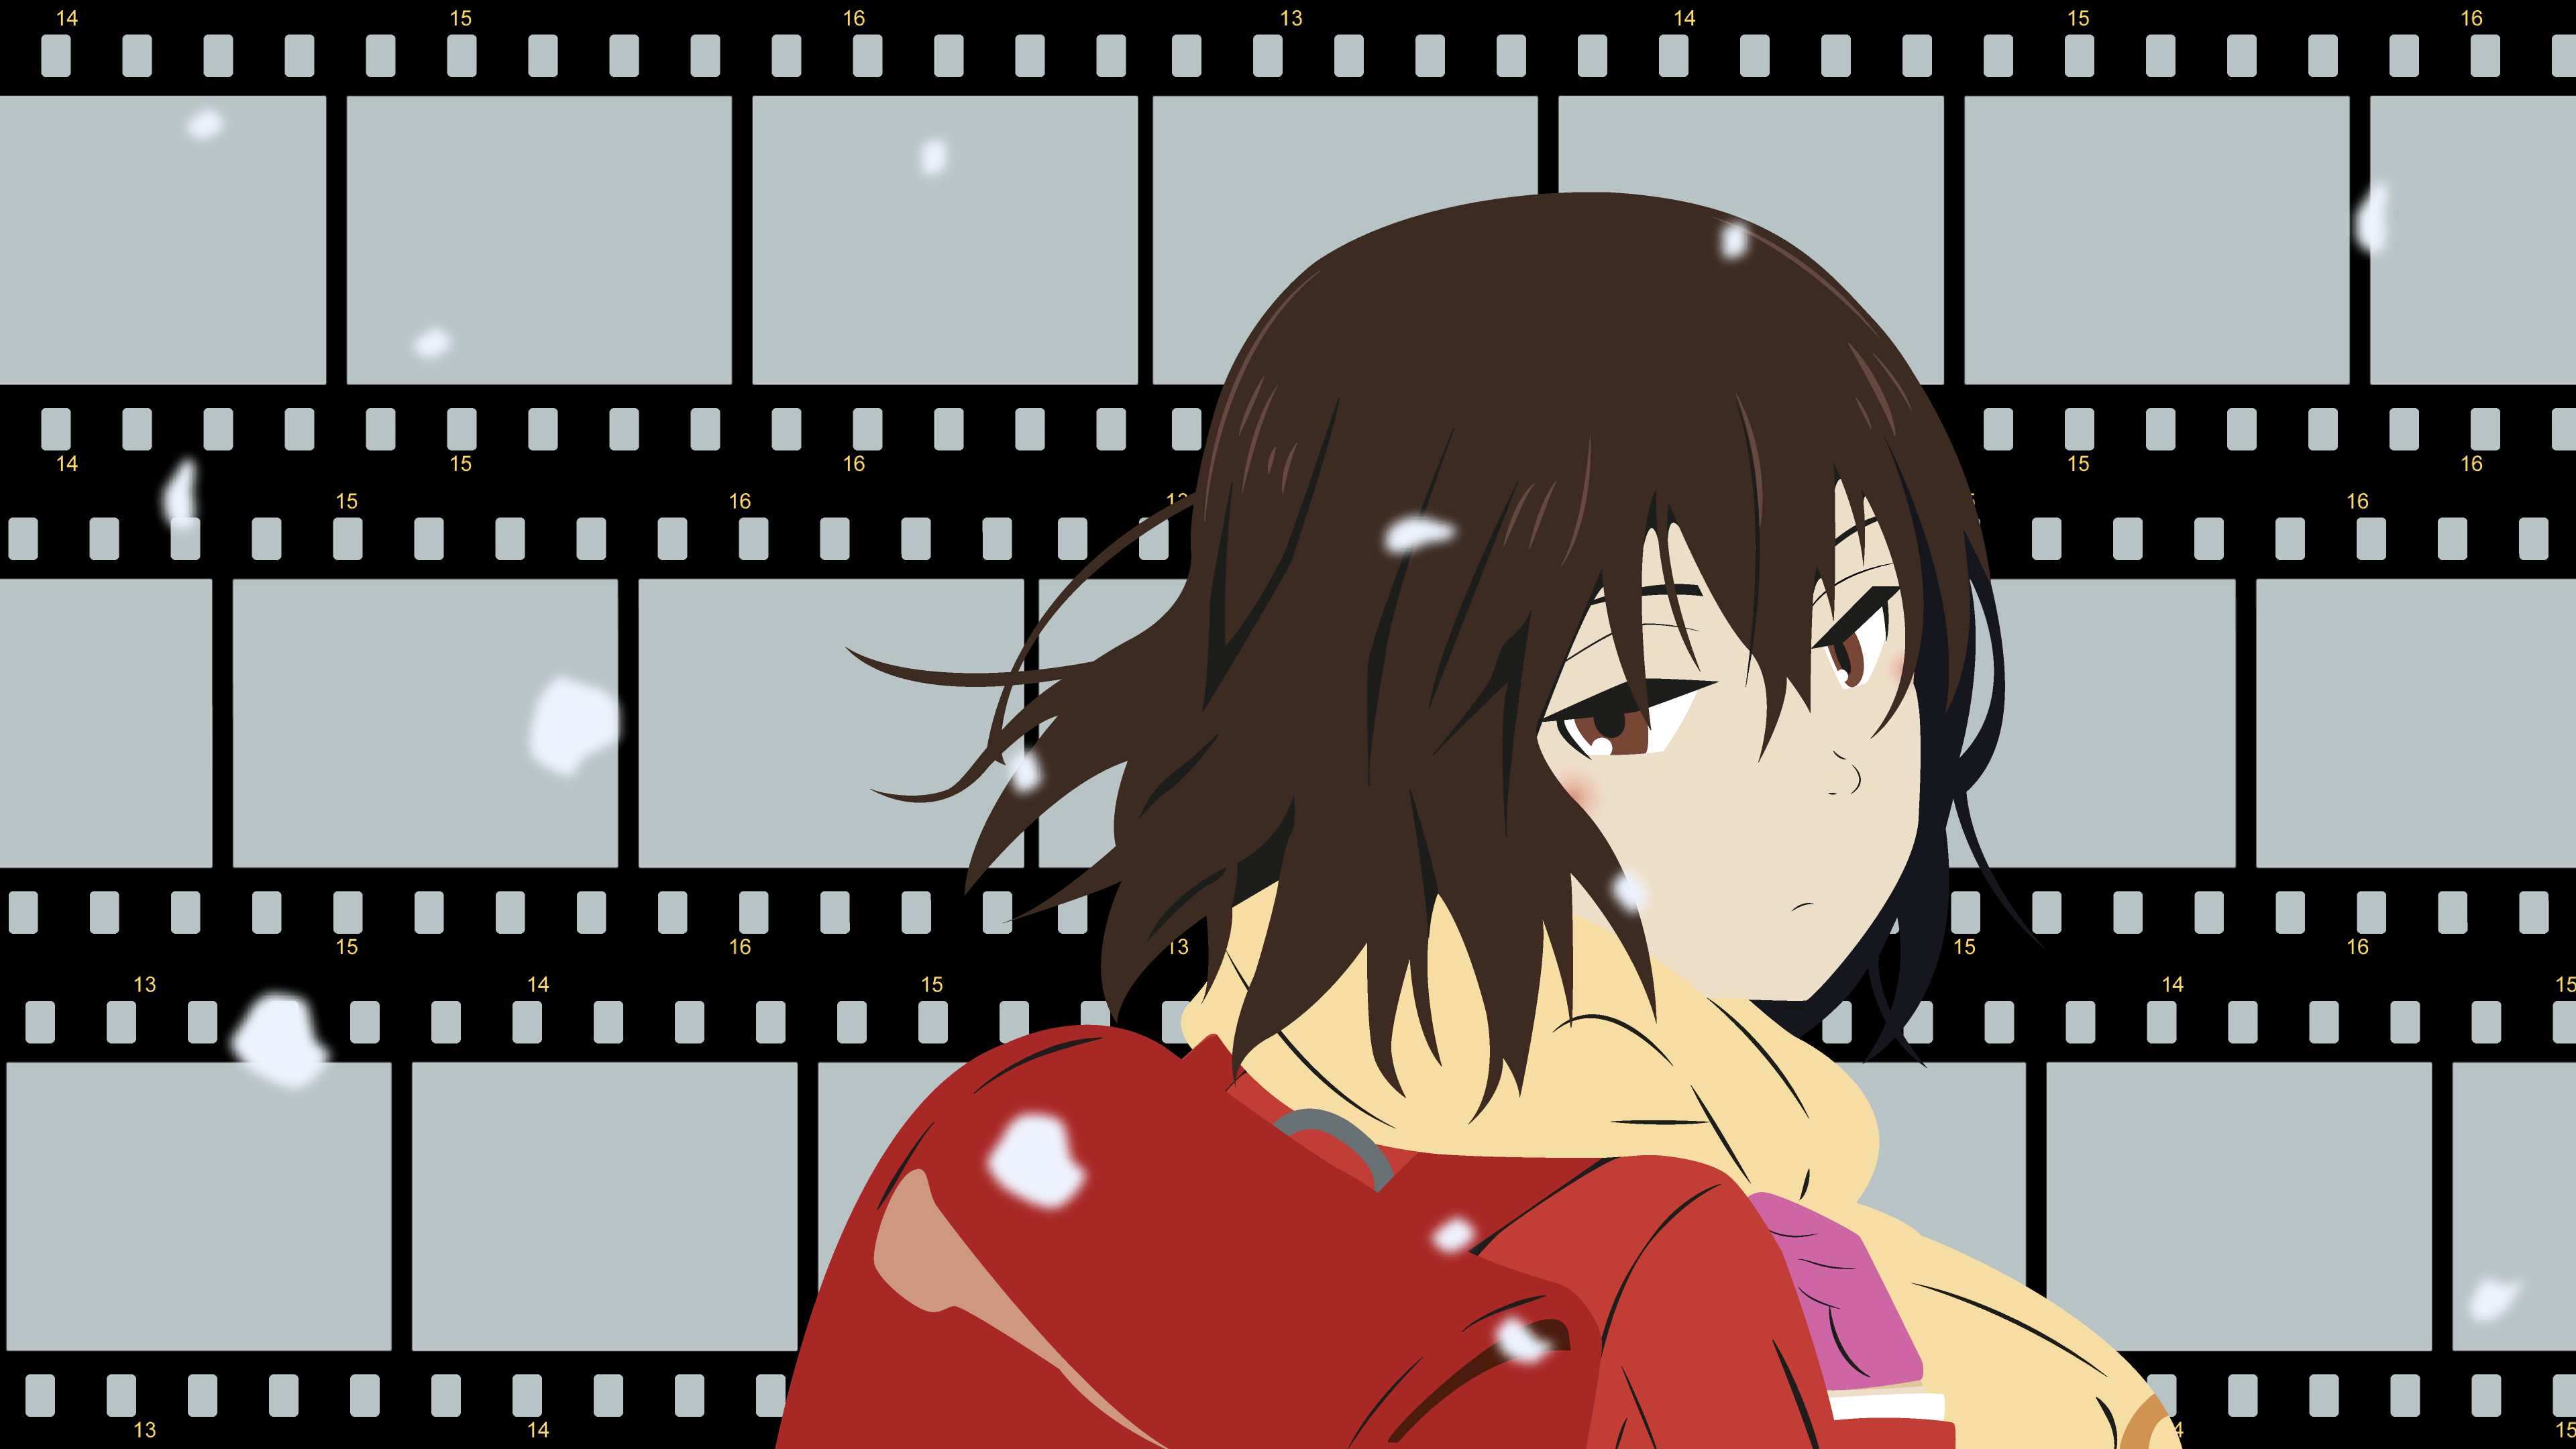 I made a Hinazuki Kayo from ERASED wallpaper : anime